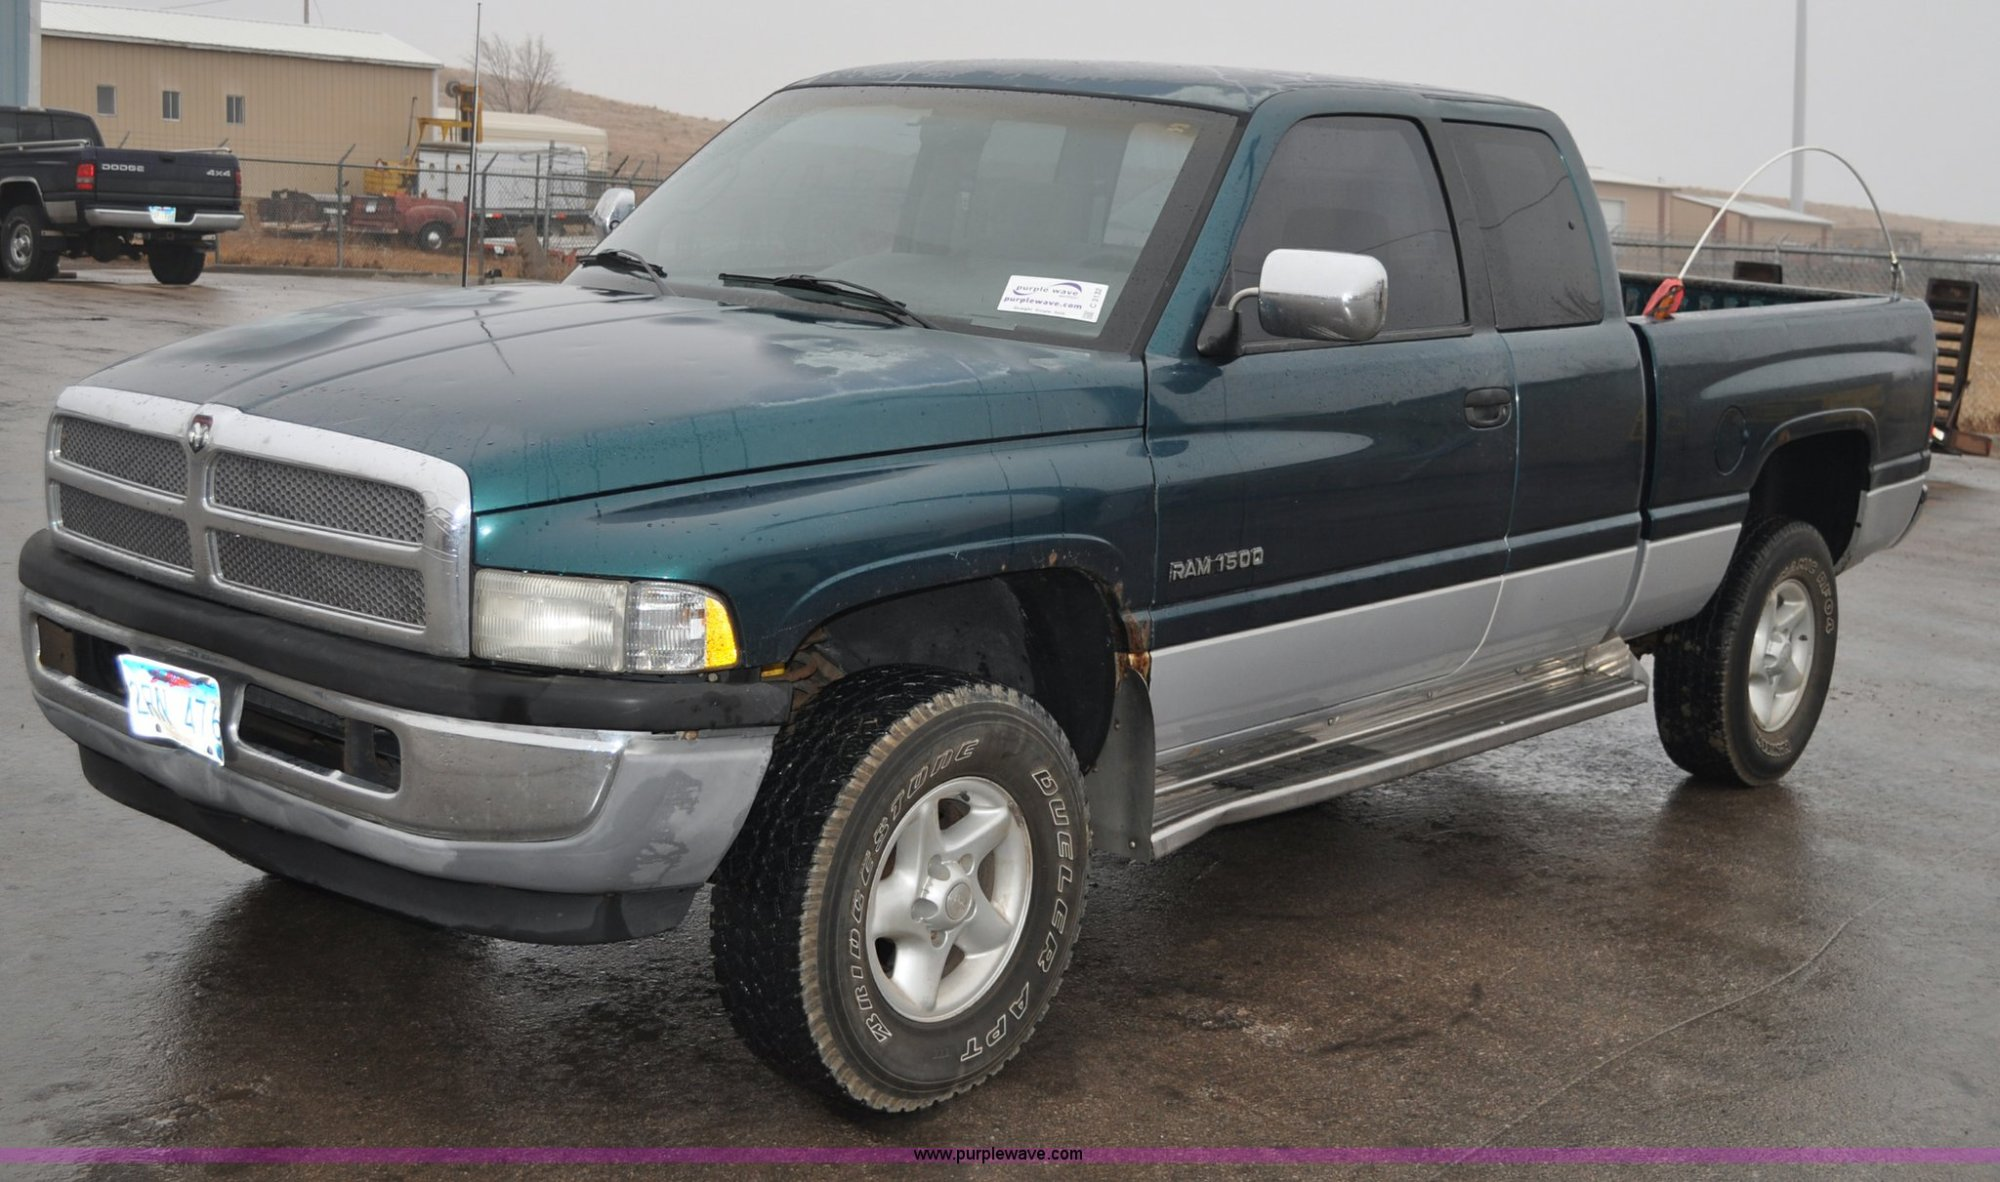 hight resolution of c3132 image for item c3132 1997 dodge ram 1500 extended cab pickup truck